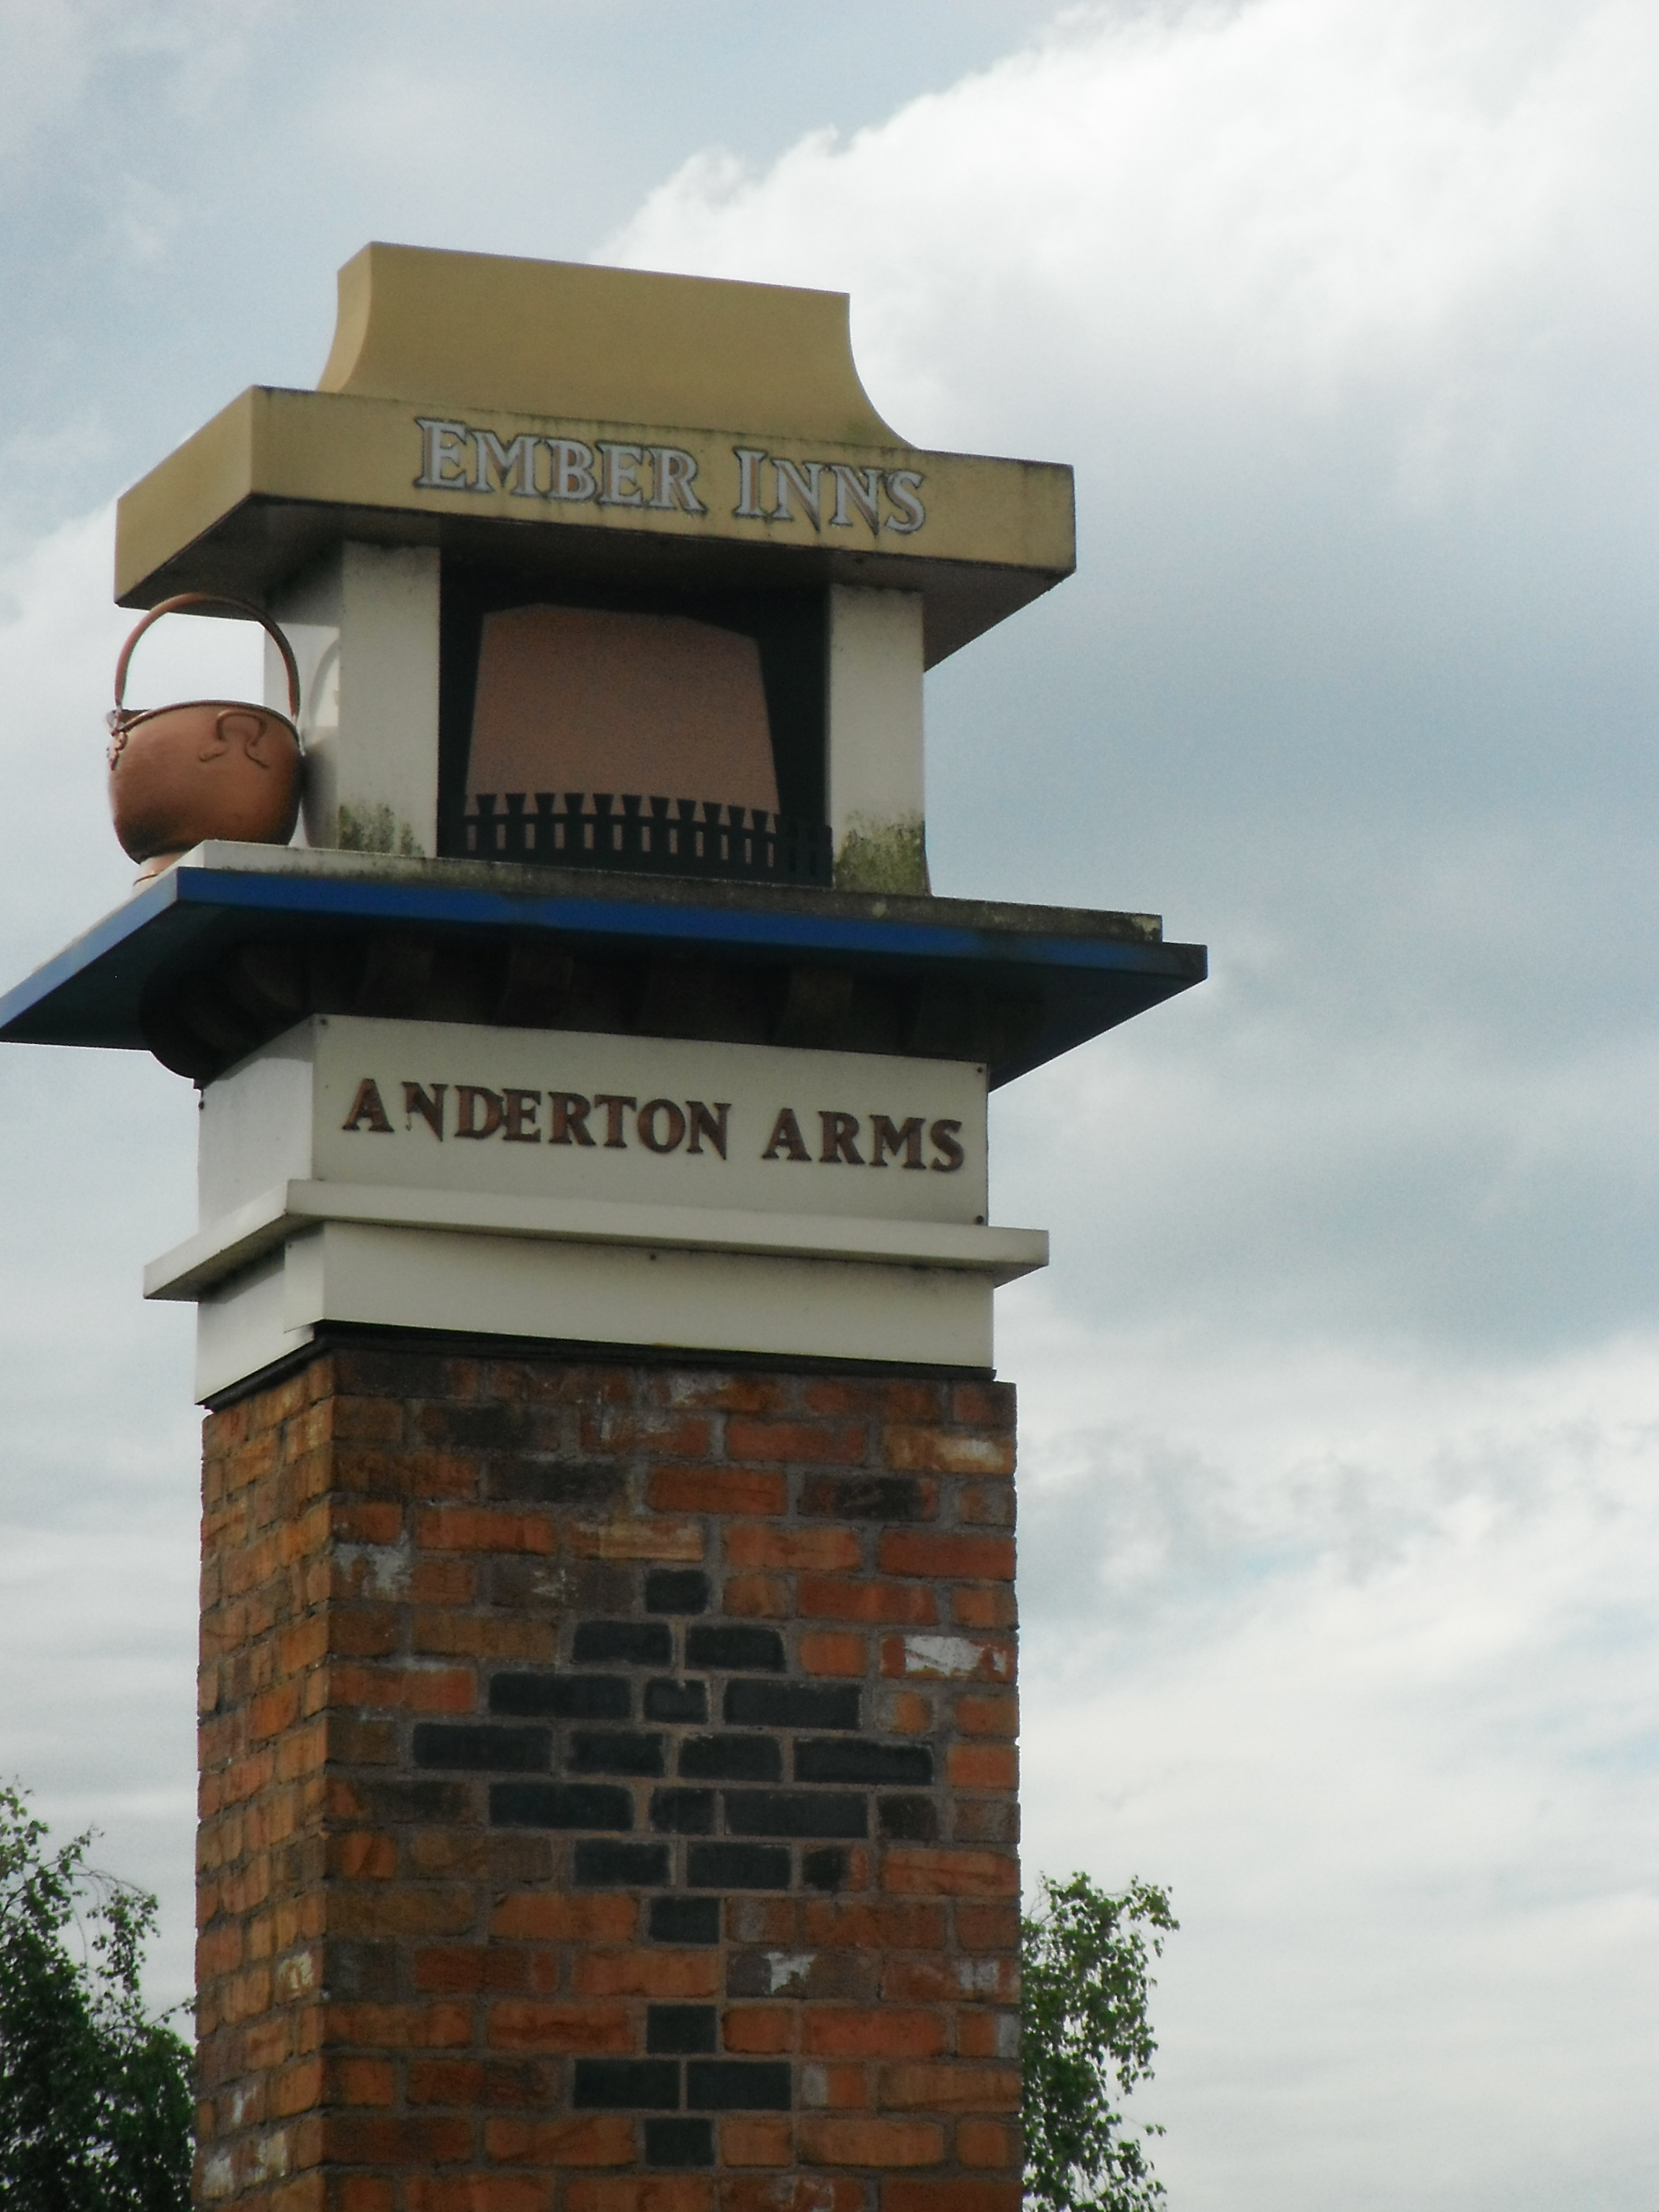 photo taken by me - the pub sign for The Anderton Arms, Fulwood, Preston